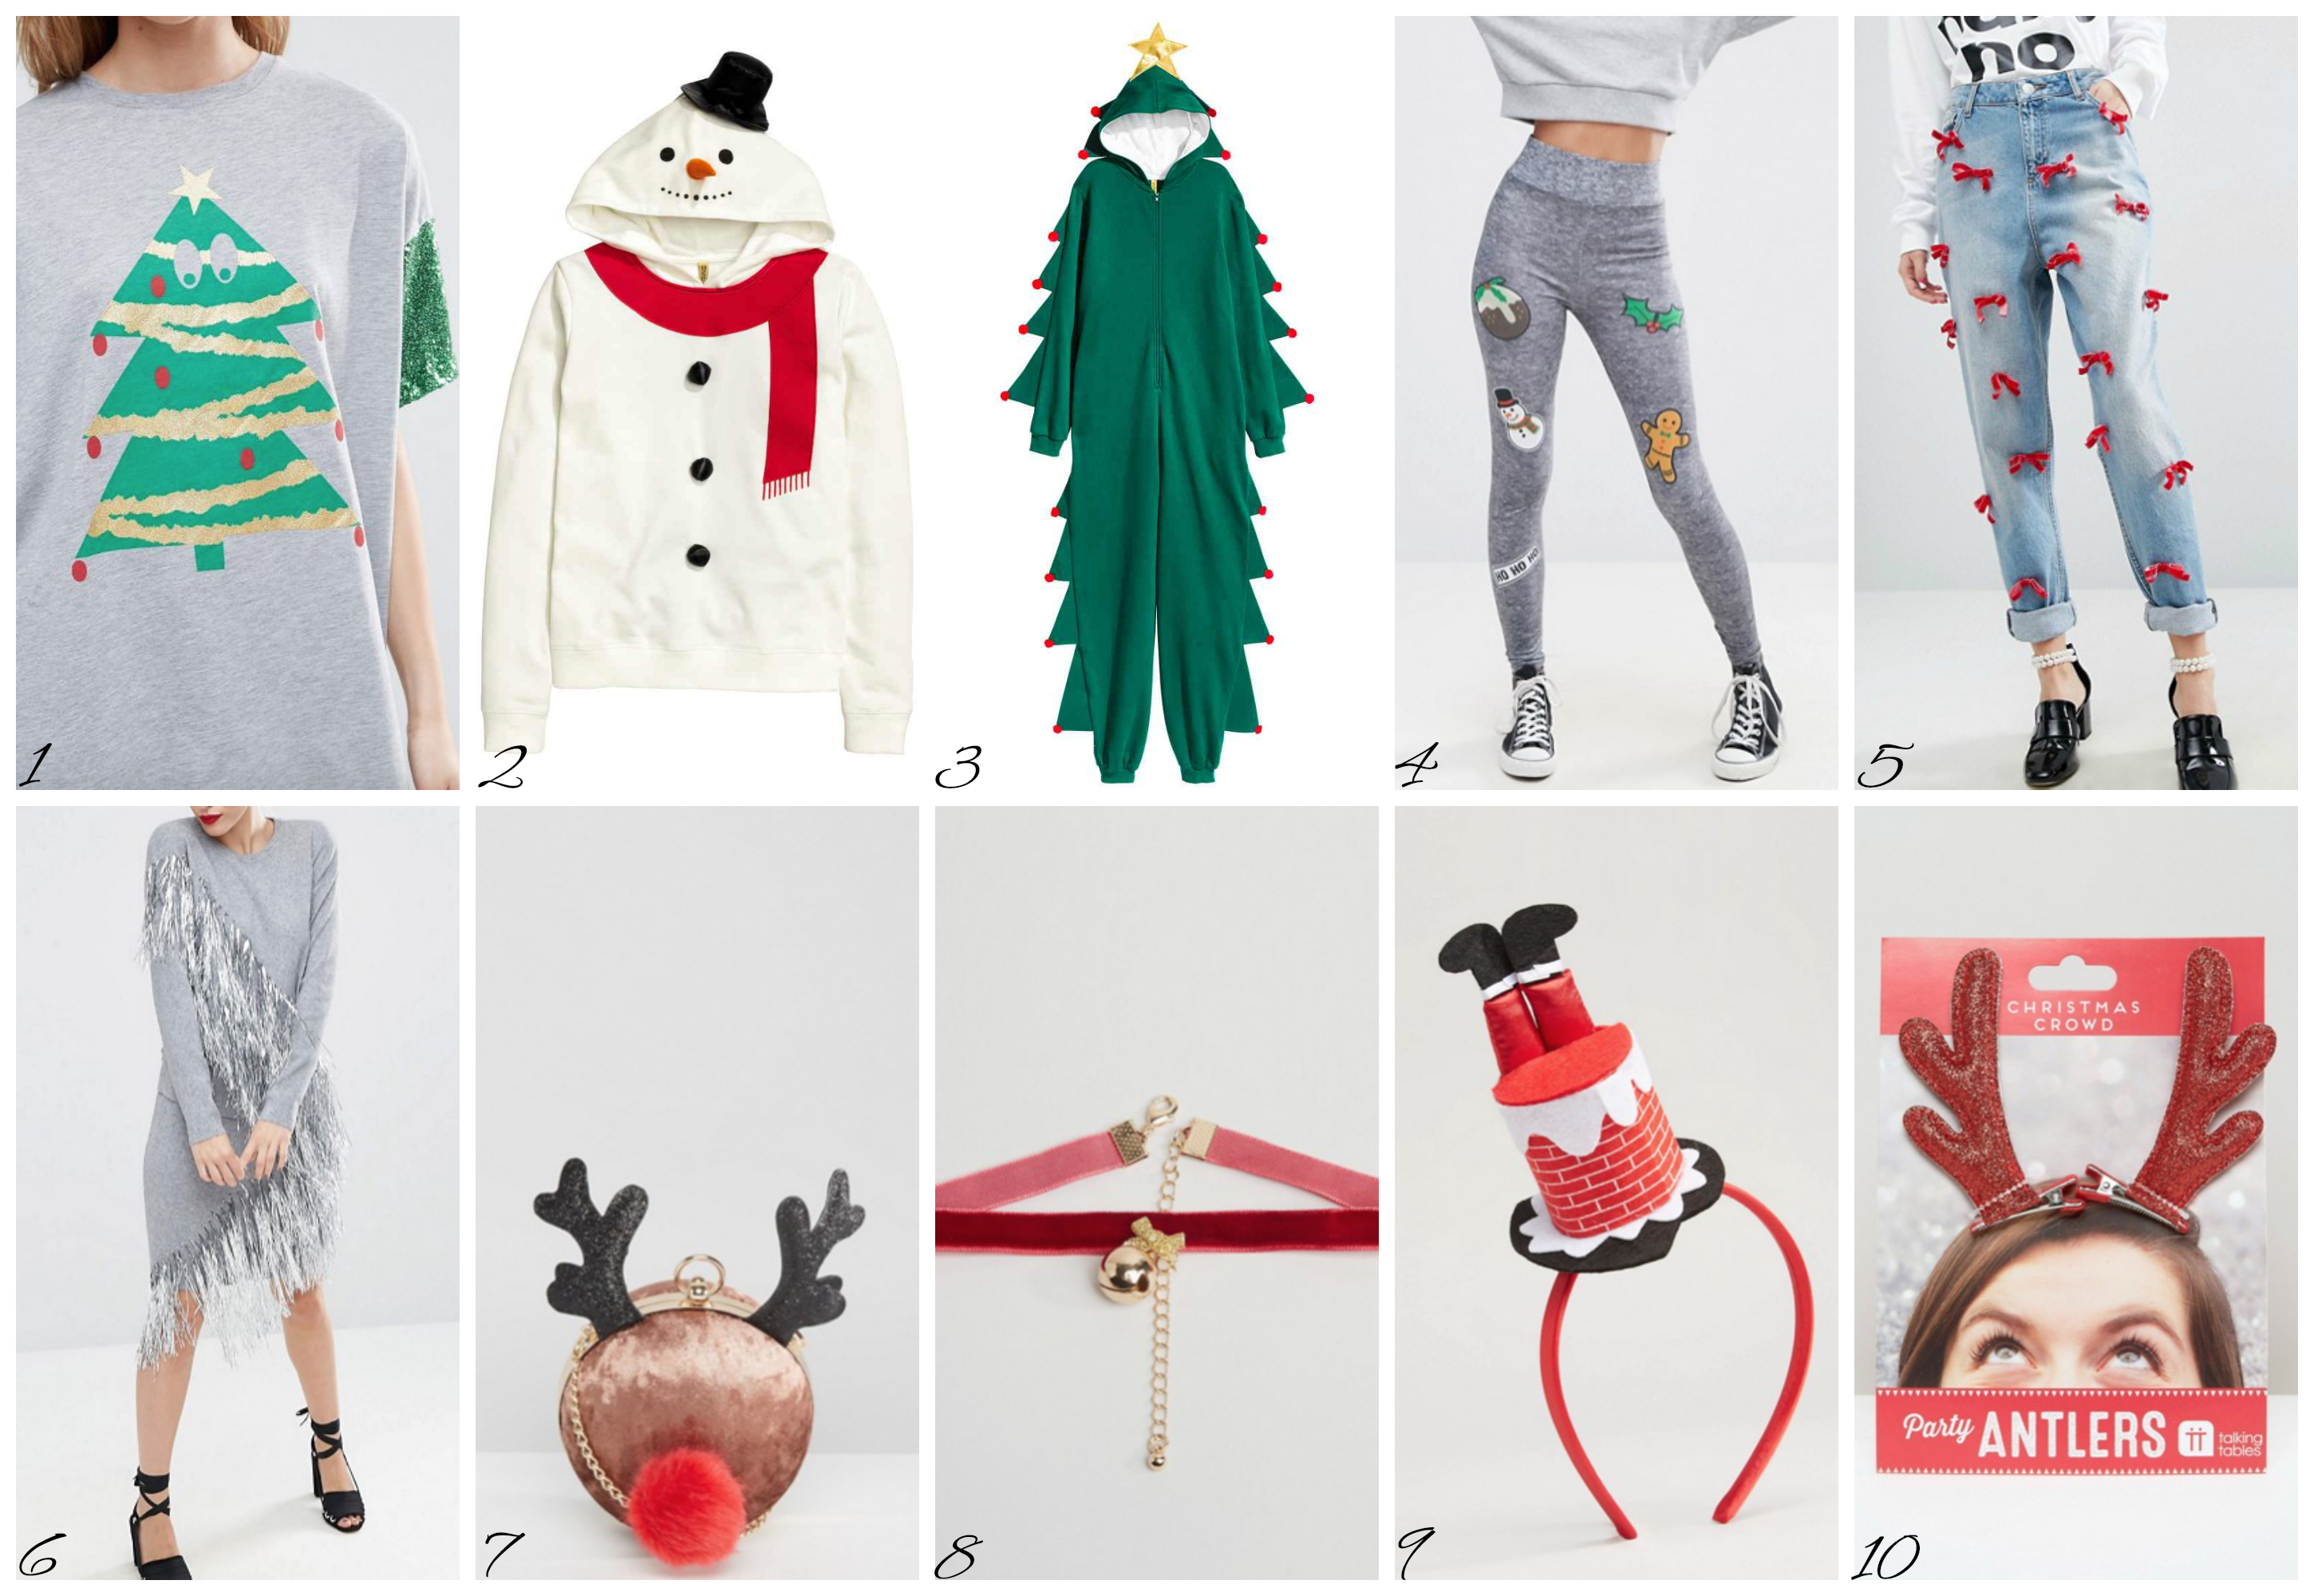 Flop del mese. Moda donna Natale - Flop of the month. Christmas Fashion.